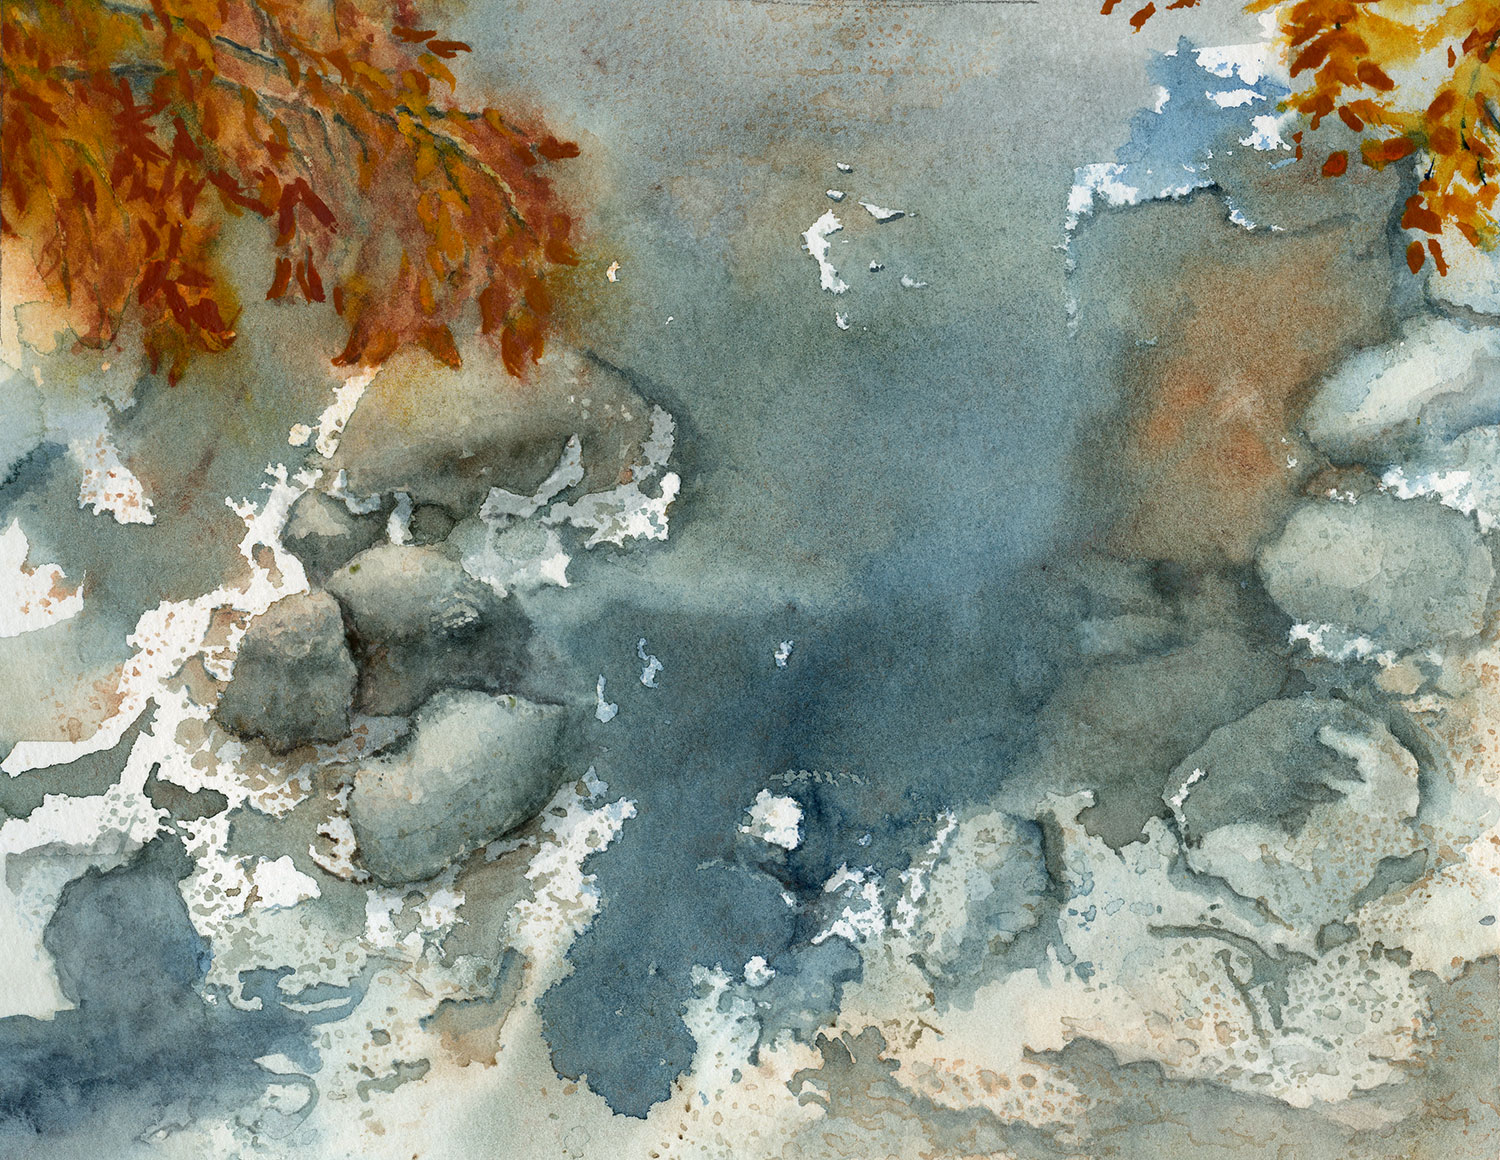 Watercolor painting of an icy stream with rocks at the edges.